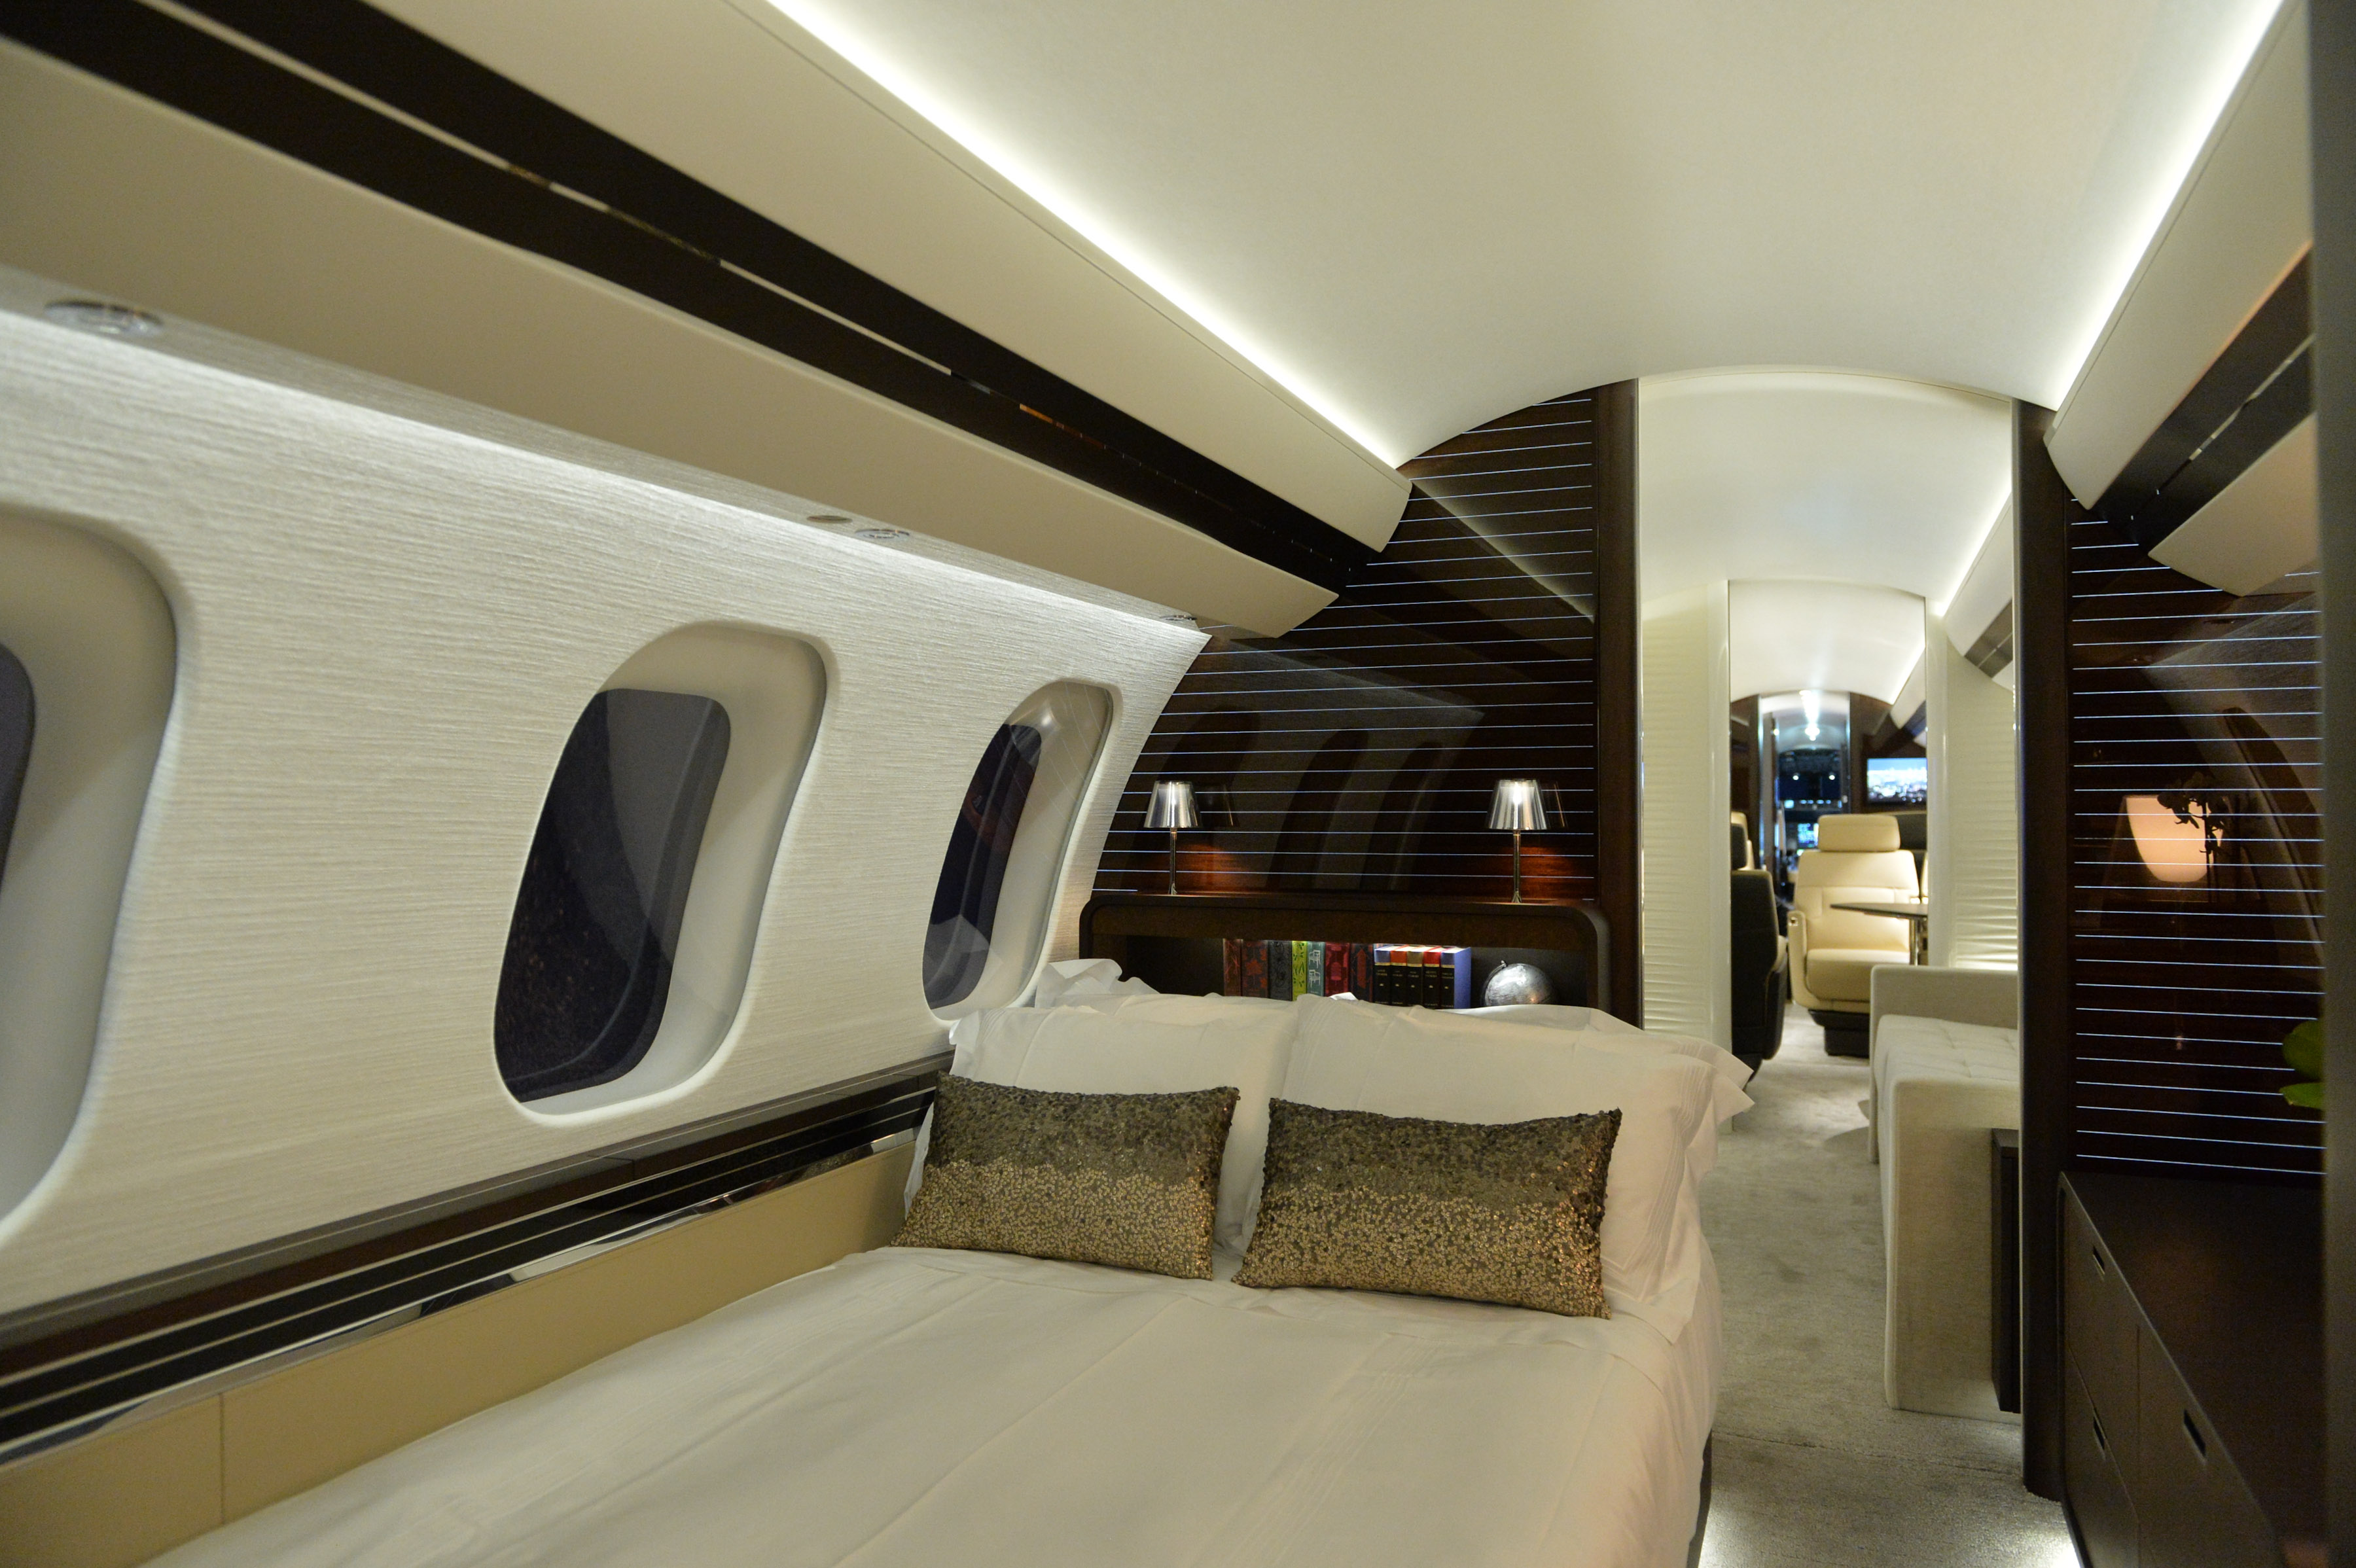 Global 7000 Stateroom Bed